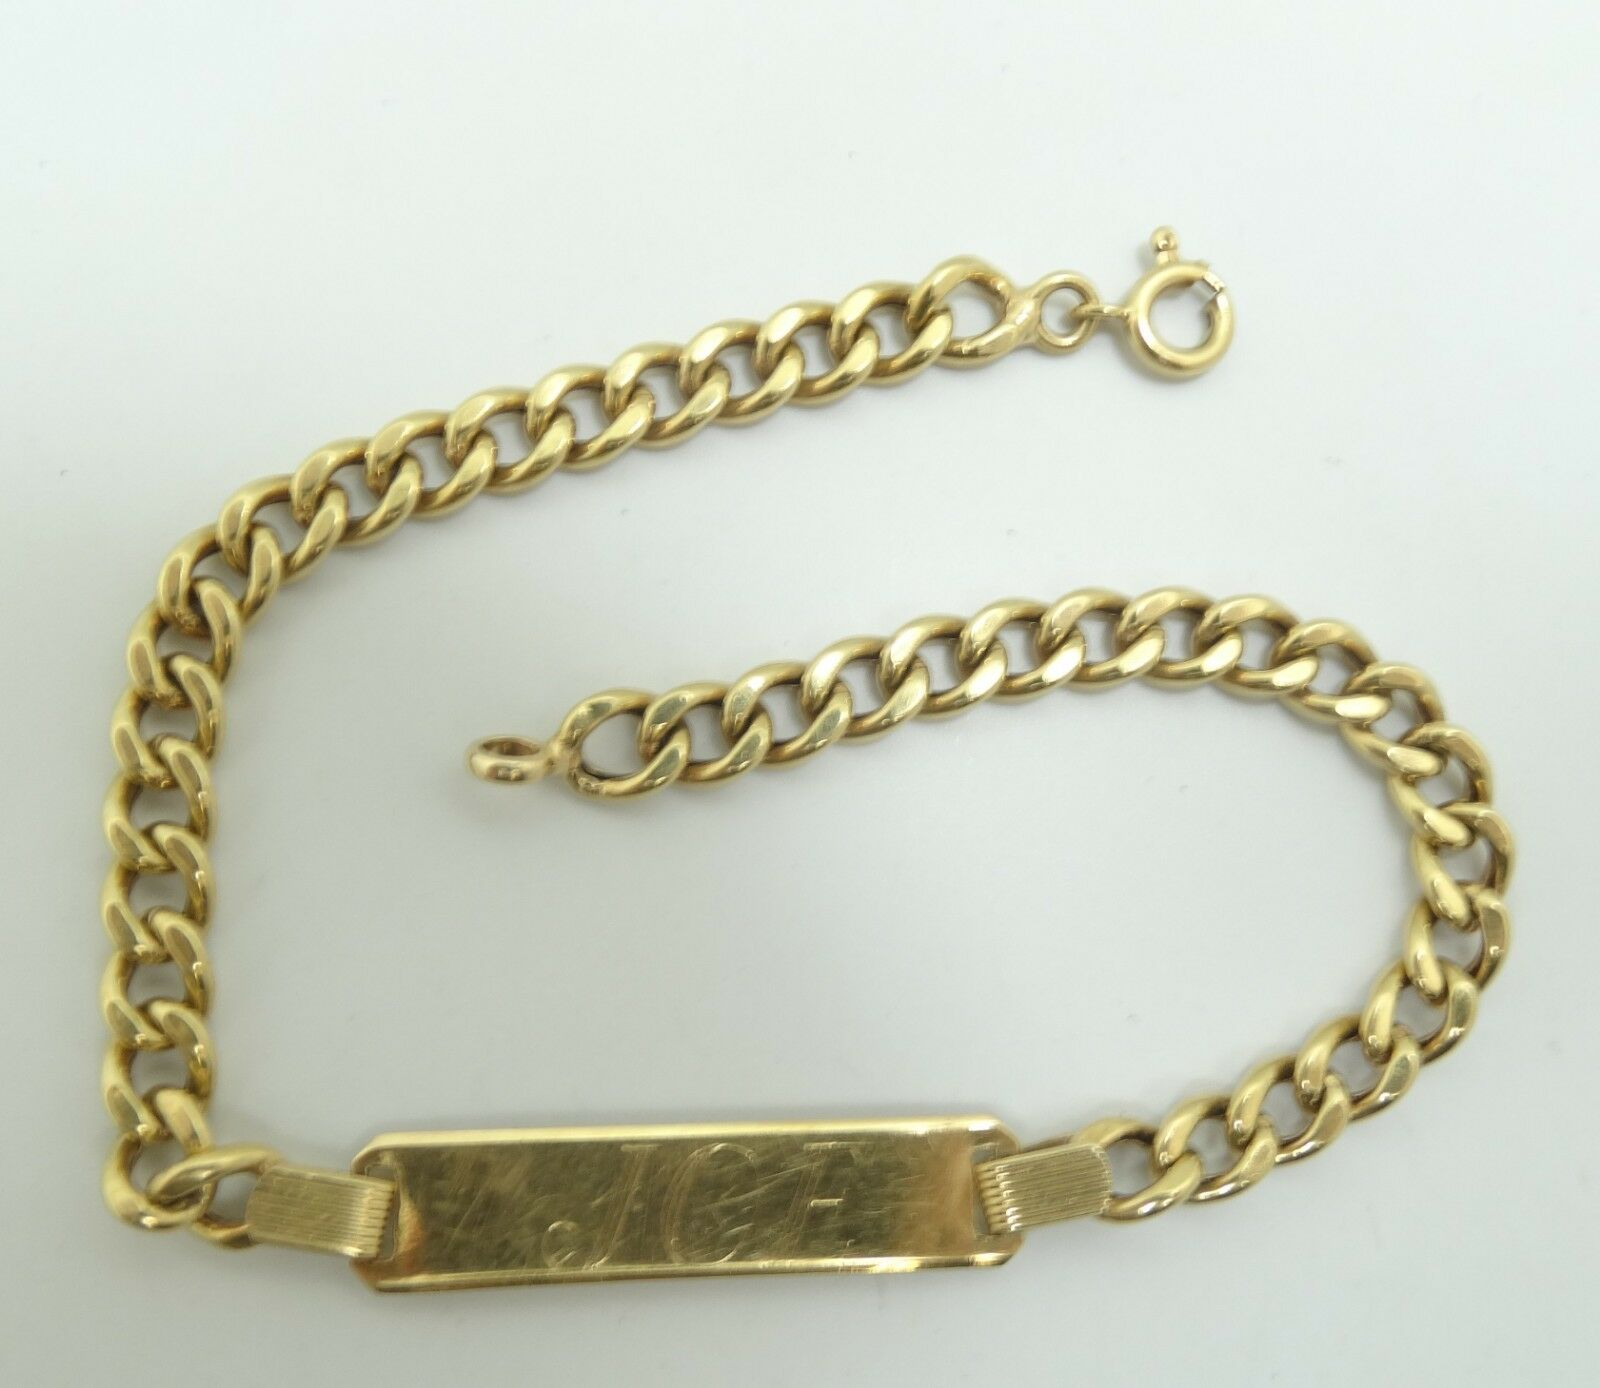 Nice 18K Yellow goldCurb Link Chain Engraved  Joe  ID Bracelet 8 Inch 7.4g D5582